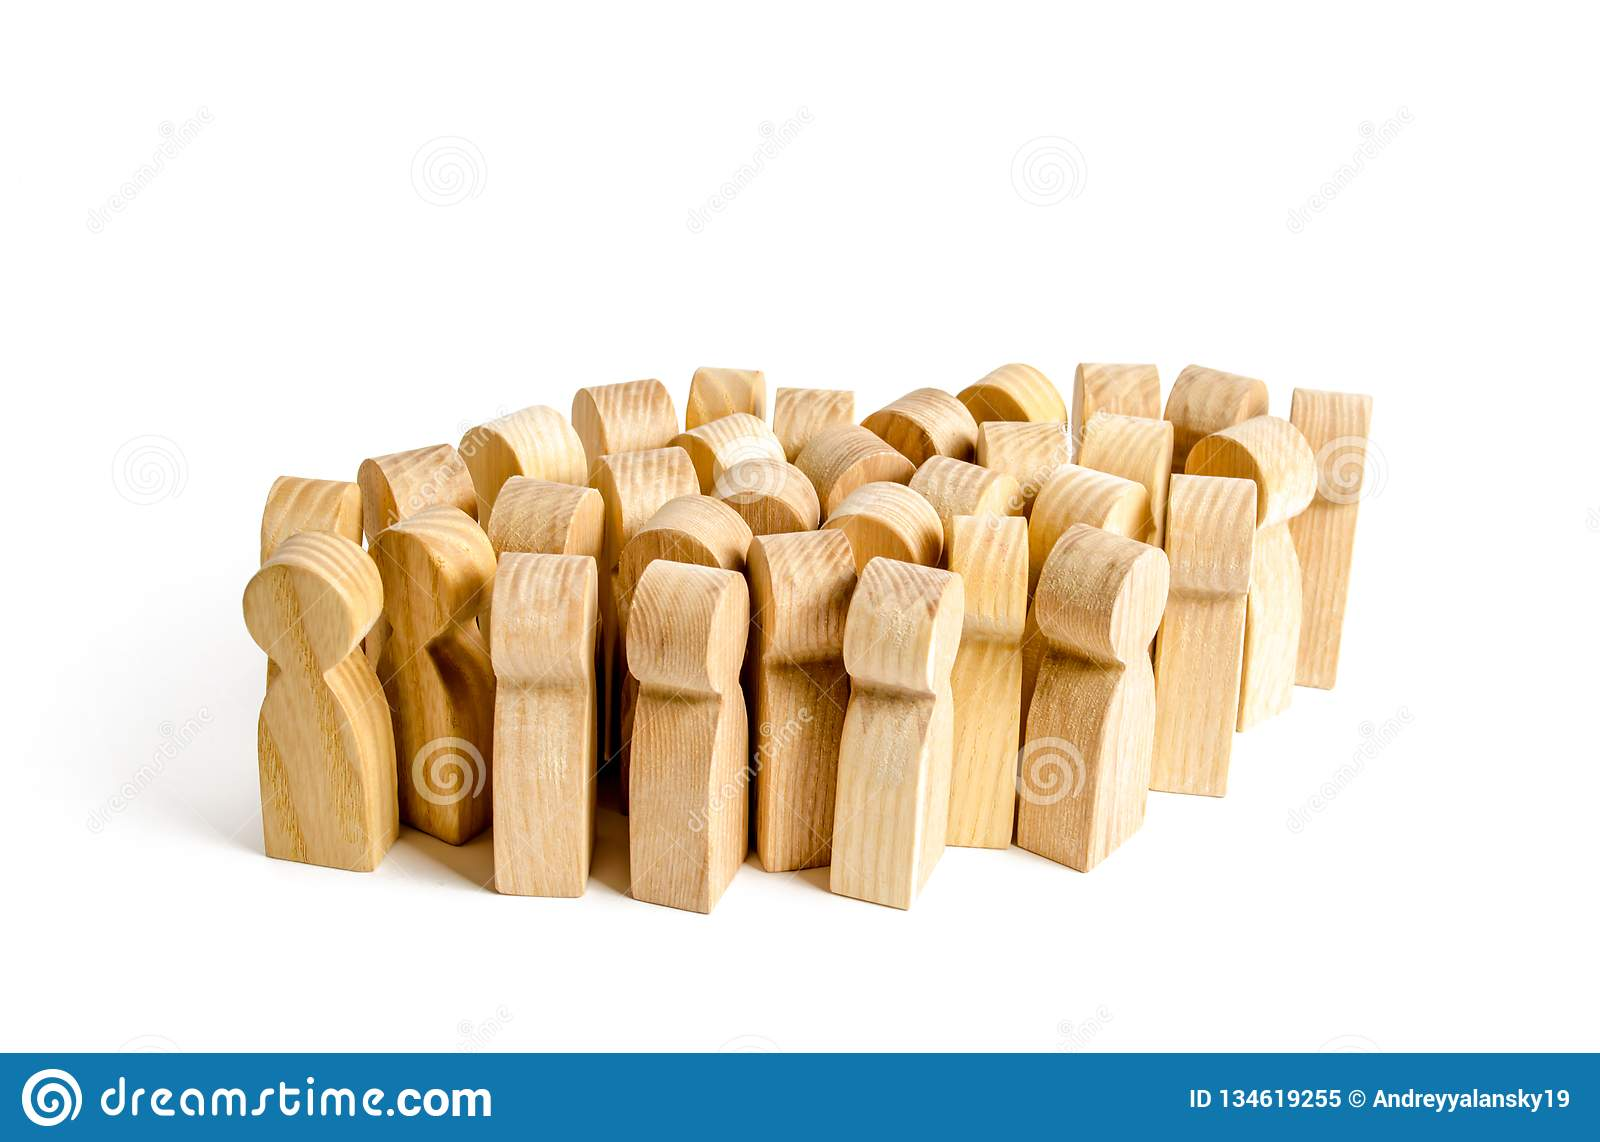 A large group of wooden figures of people. Society, community. social activity. Society, social group. Herd instinct, management